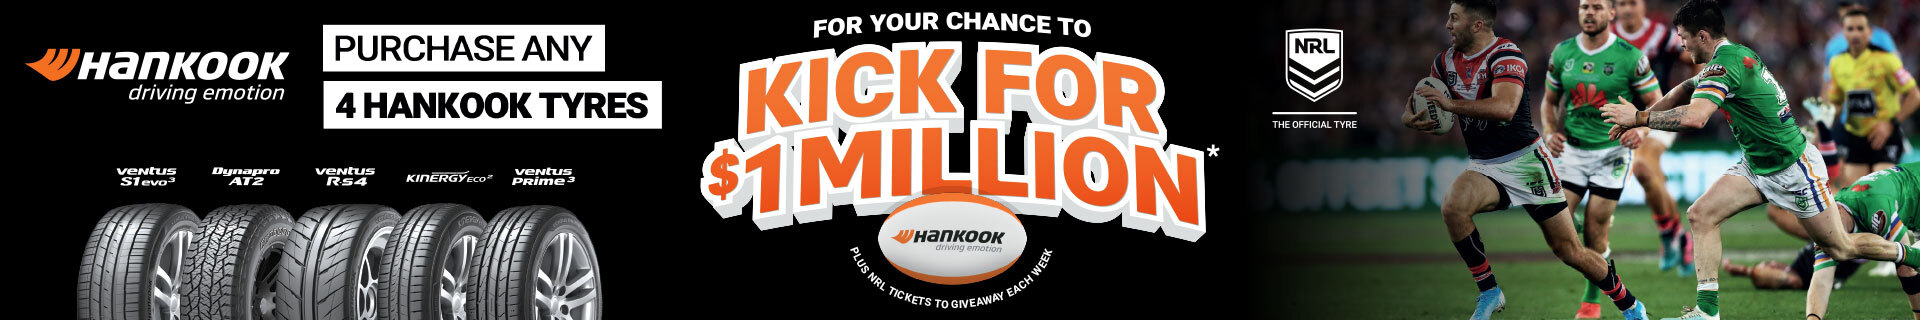 Kick for $1 Million with Hankook